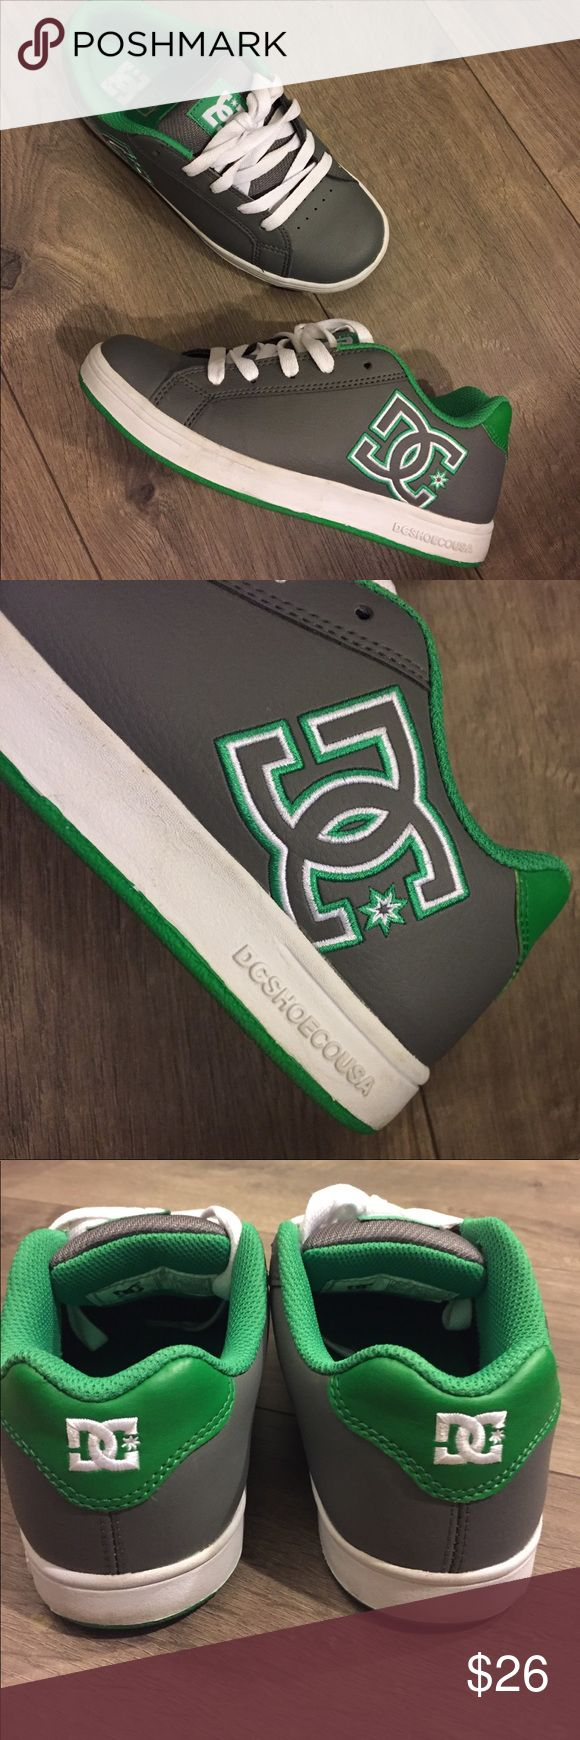 DC Shoes USA 💥NEW Boys size 4.5 Green & Gray 💥Only worn once!! NEW💥 only selling because I don't need any more shoes 😏 Ask me if you need any other details, but the photos should do. 🔺One dirt spot on the shoe lace from touching another pair of shoes but if you tuck the laces in you don't see it. Or replacing with shorter laces would look better.  I'm a women's size 6 and fit in these by the way. 👏For boys and girls! DC Shoes Sneakers